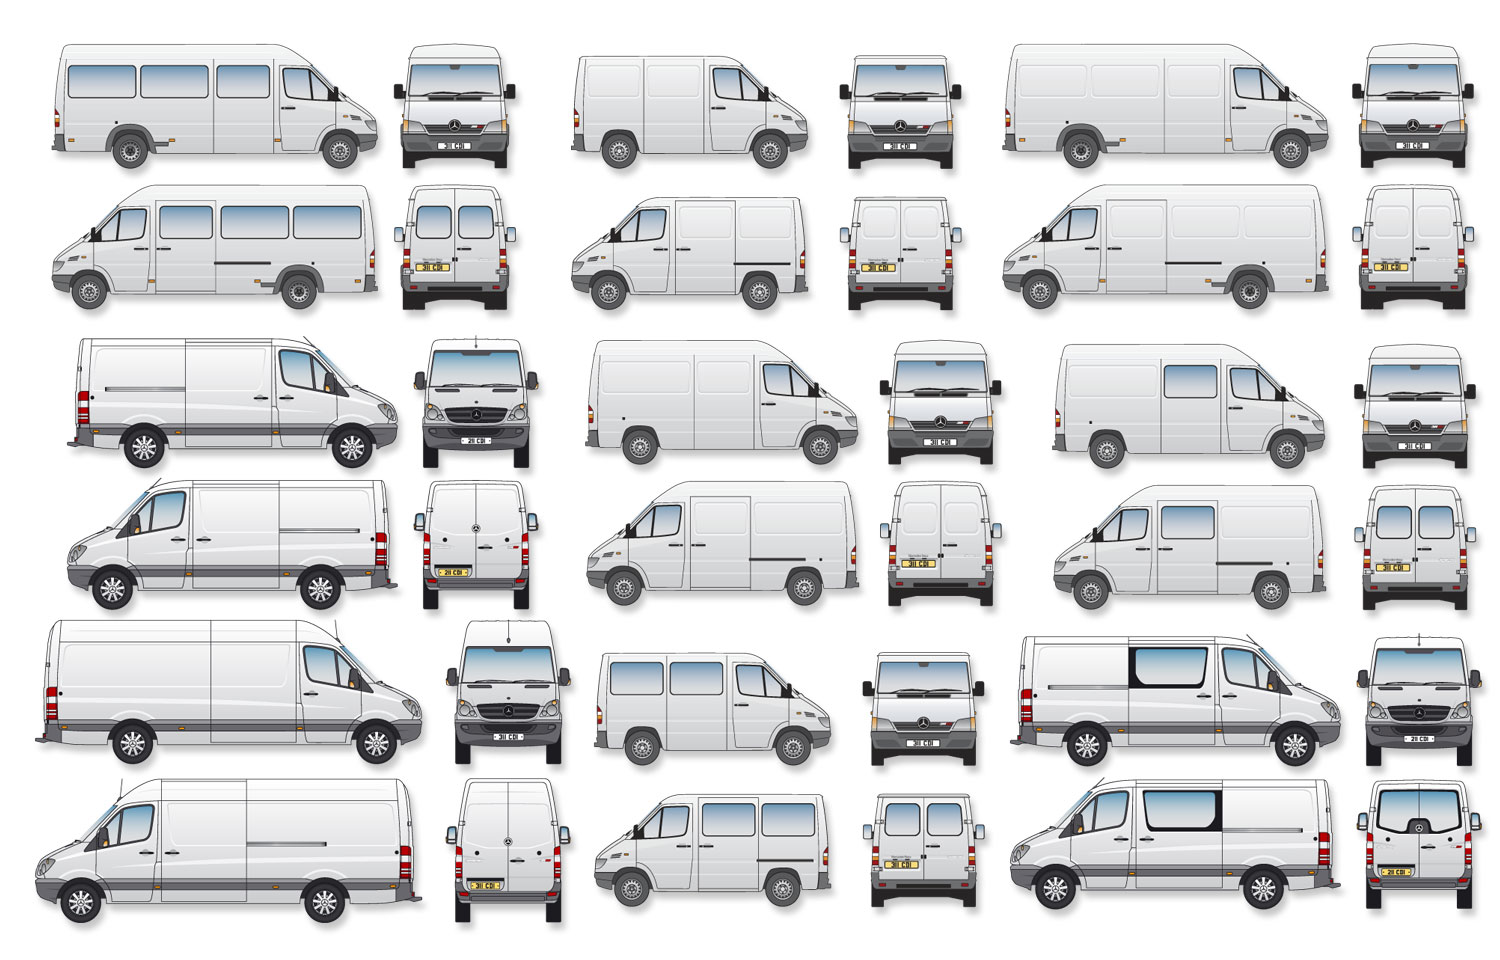 Mercedes-Benz Sprinter Signwriter's vector drawings, blueprints (Complete Set)